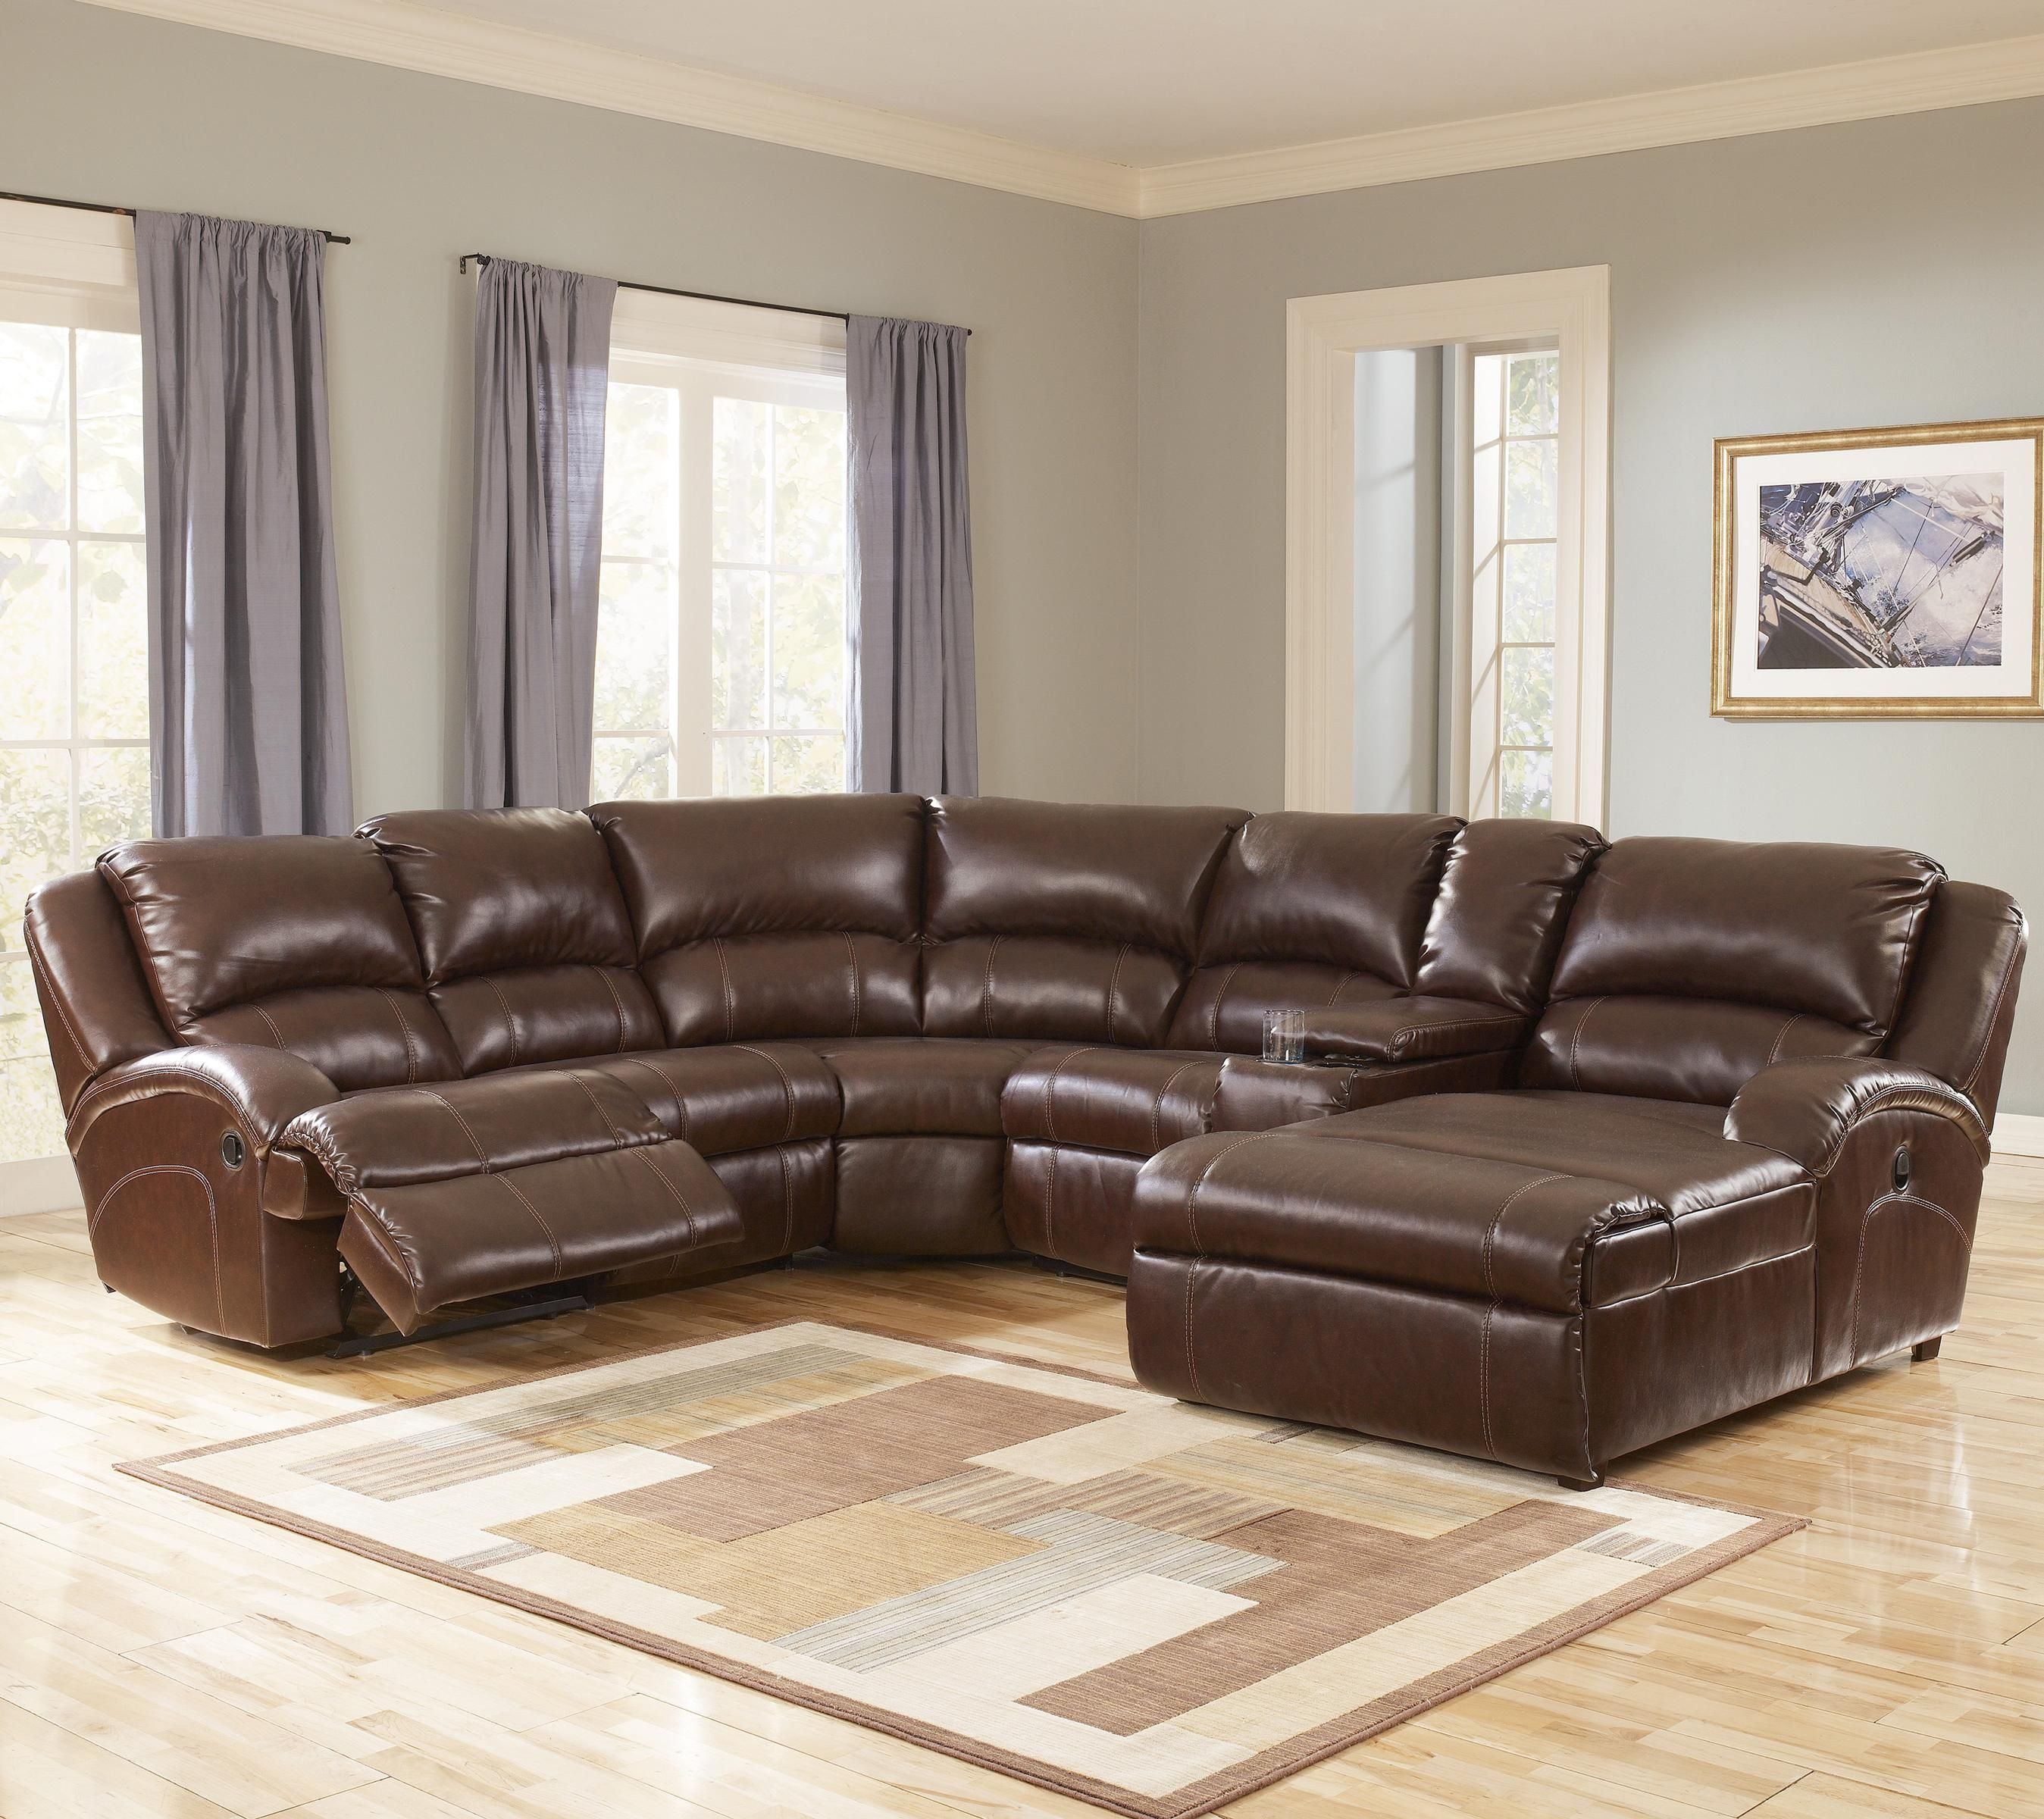 durablend harness leather sectional with recliner and chaise by signature design by ashley prime